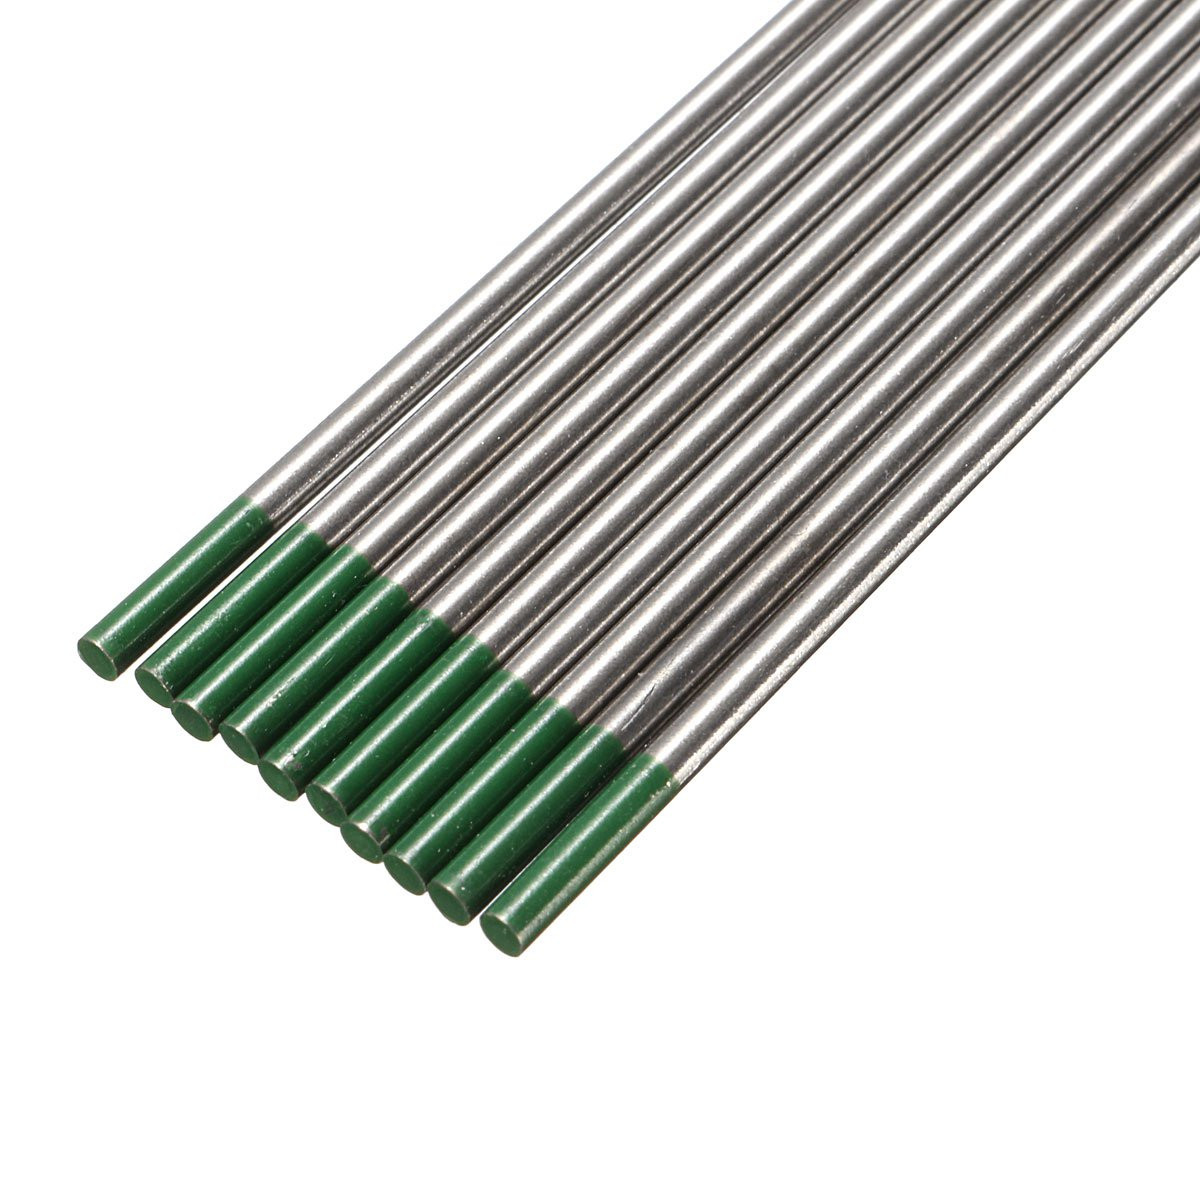 10pcs 175 wp green welding tungsten electrode welding electrodes alex nld. Black Bedroom Furniture Sets. Home Design Ideas